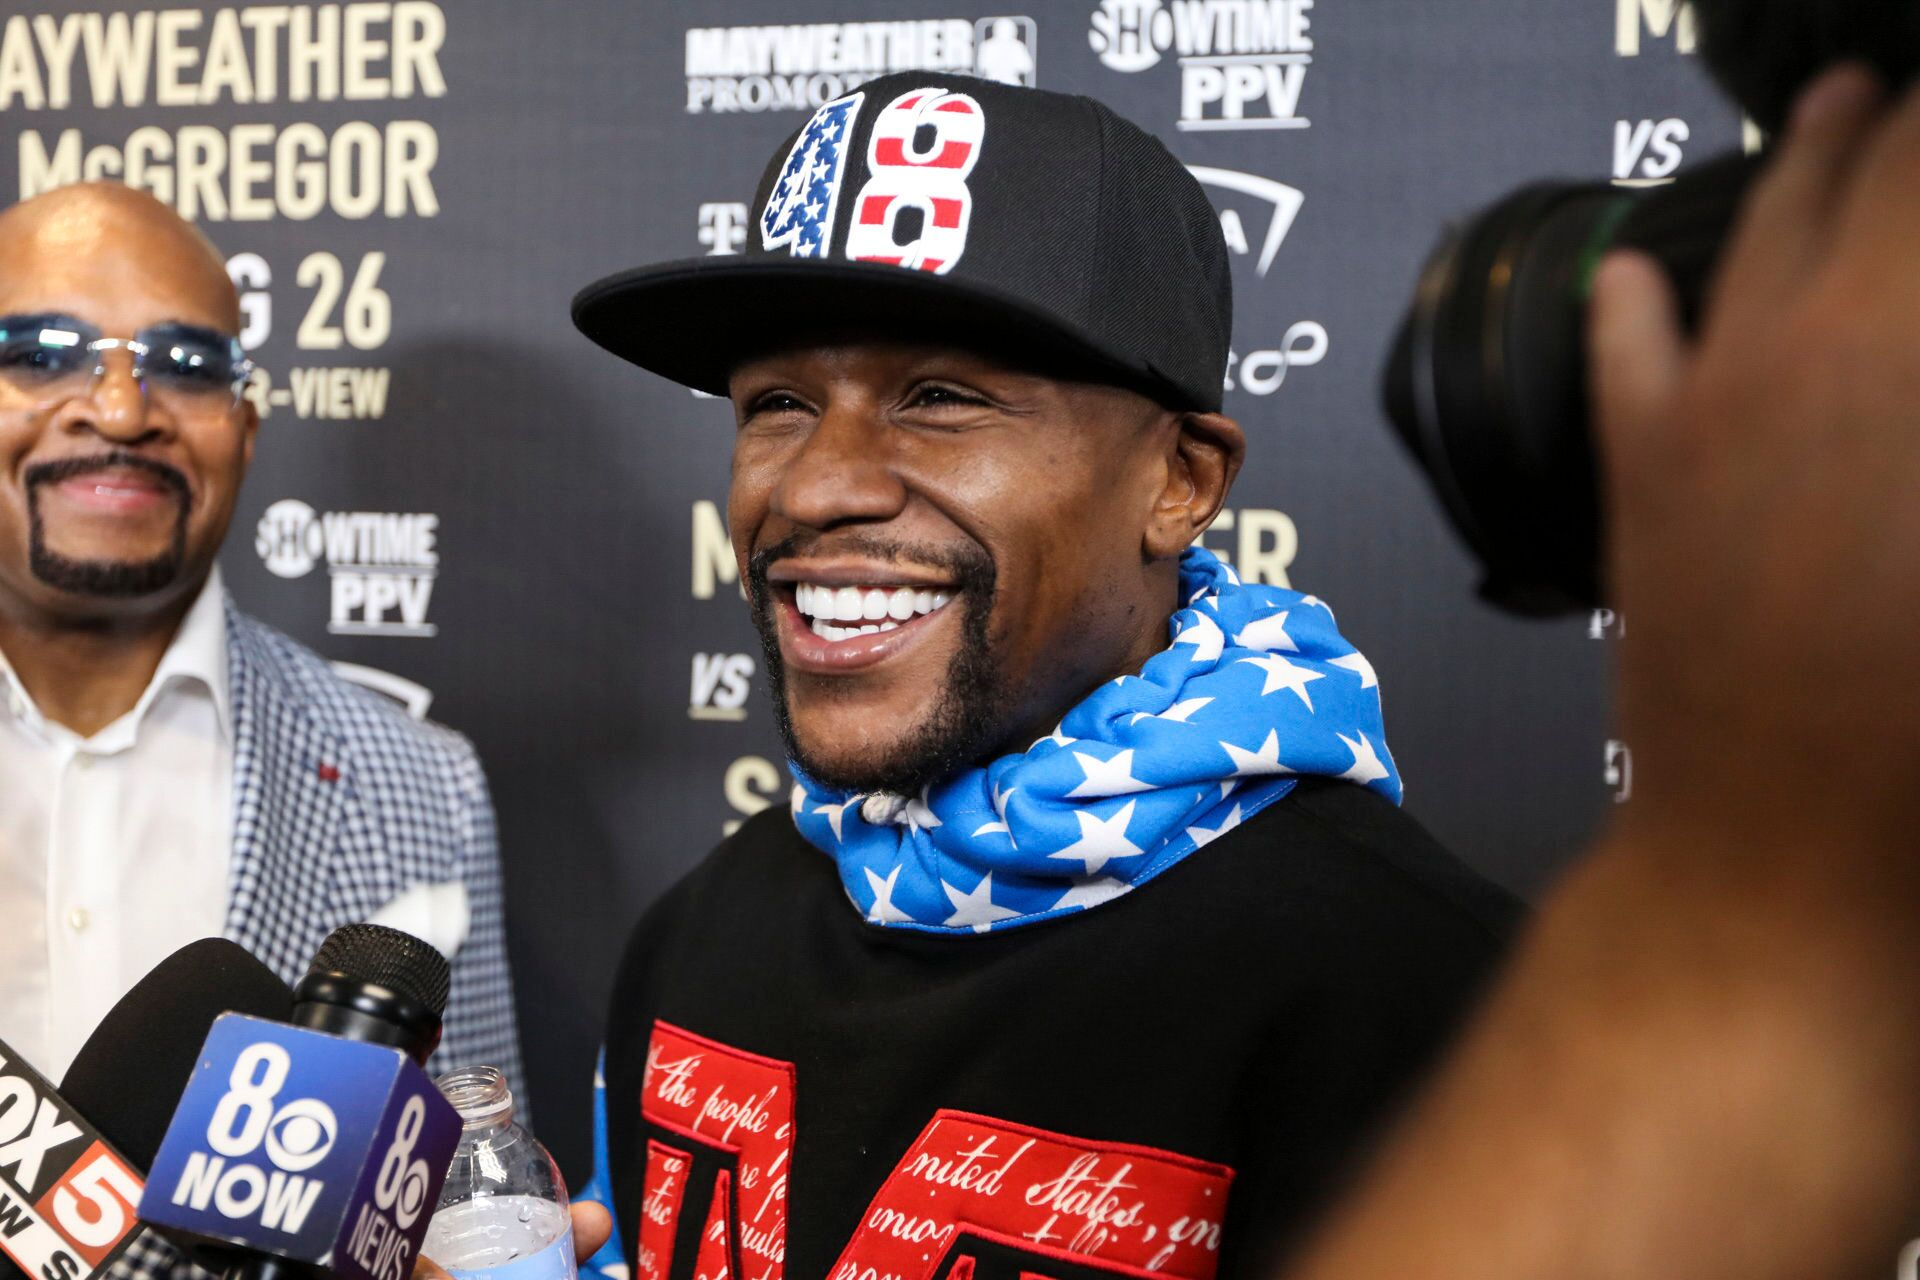 002 Floyd Mayweather - Will Floyd Mayweather Resume Fighting and What is He Fighting For?